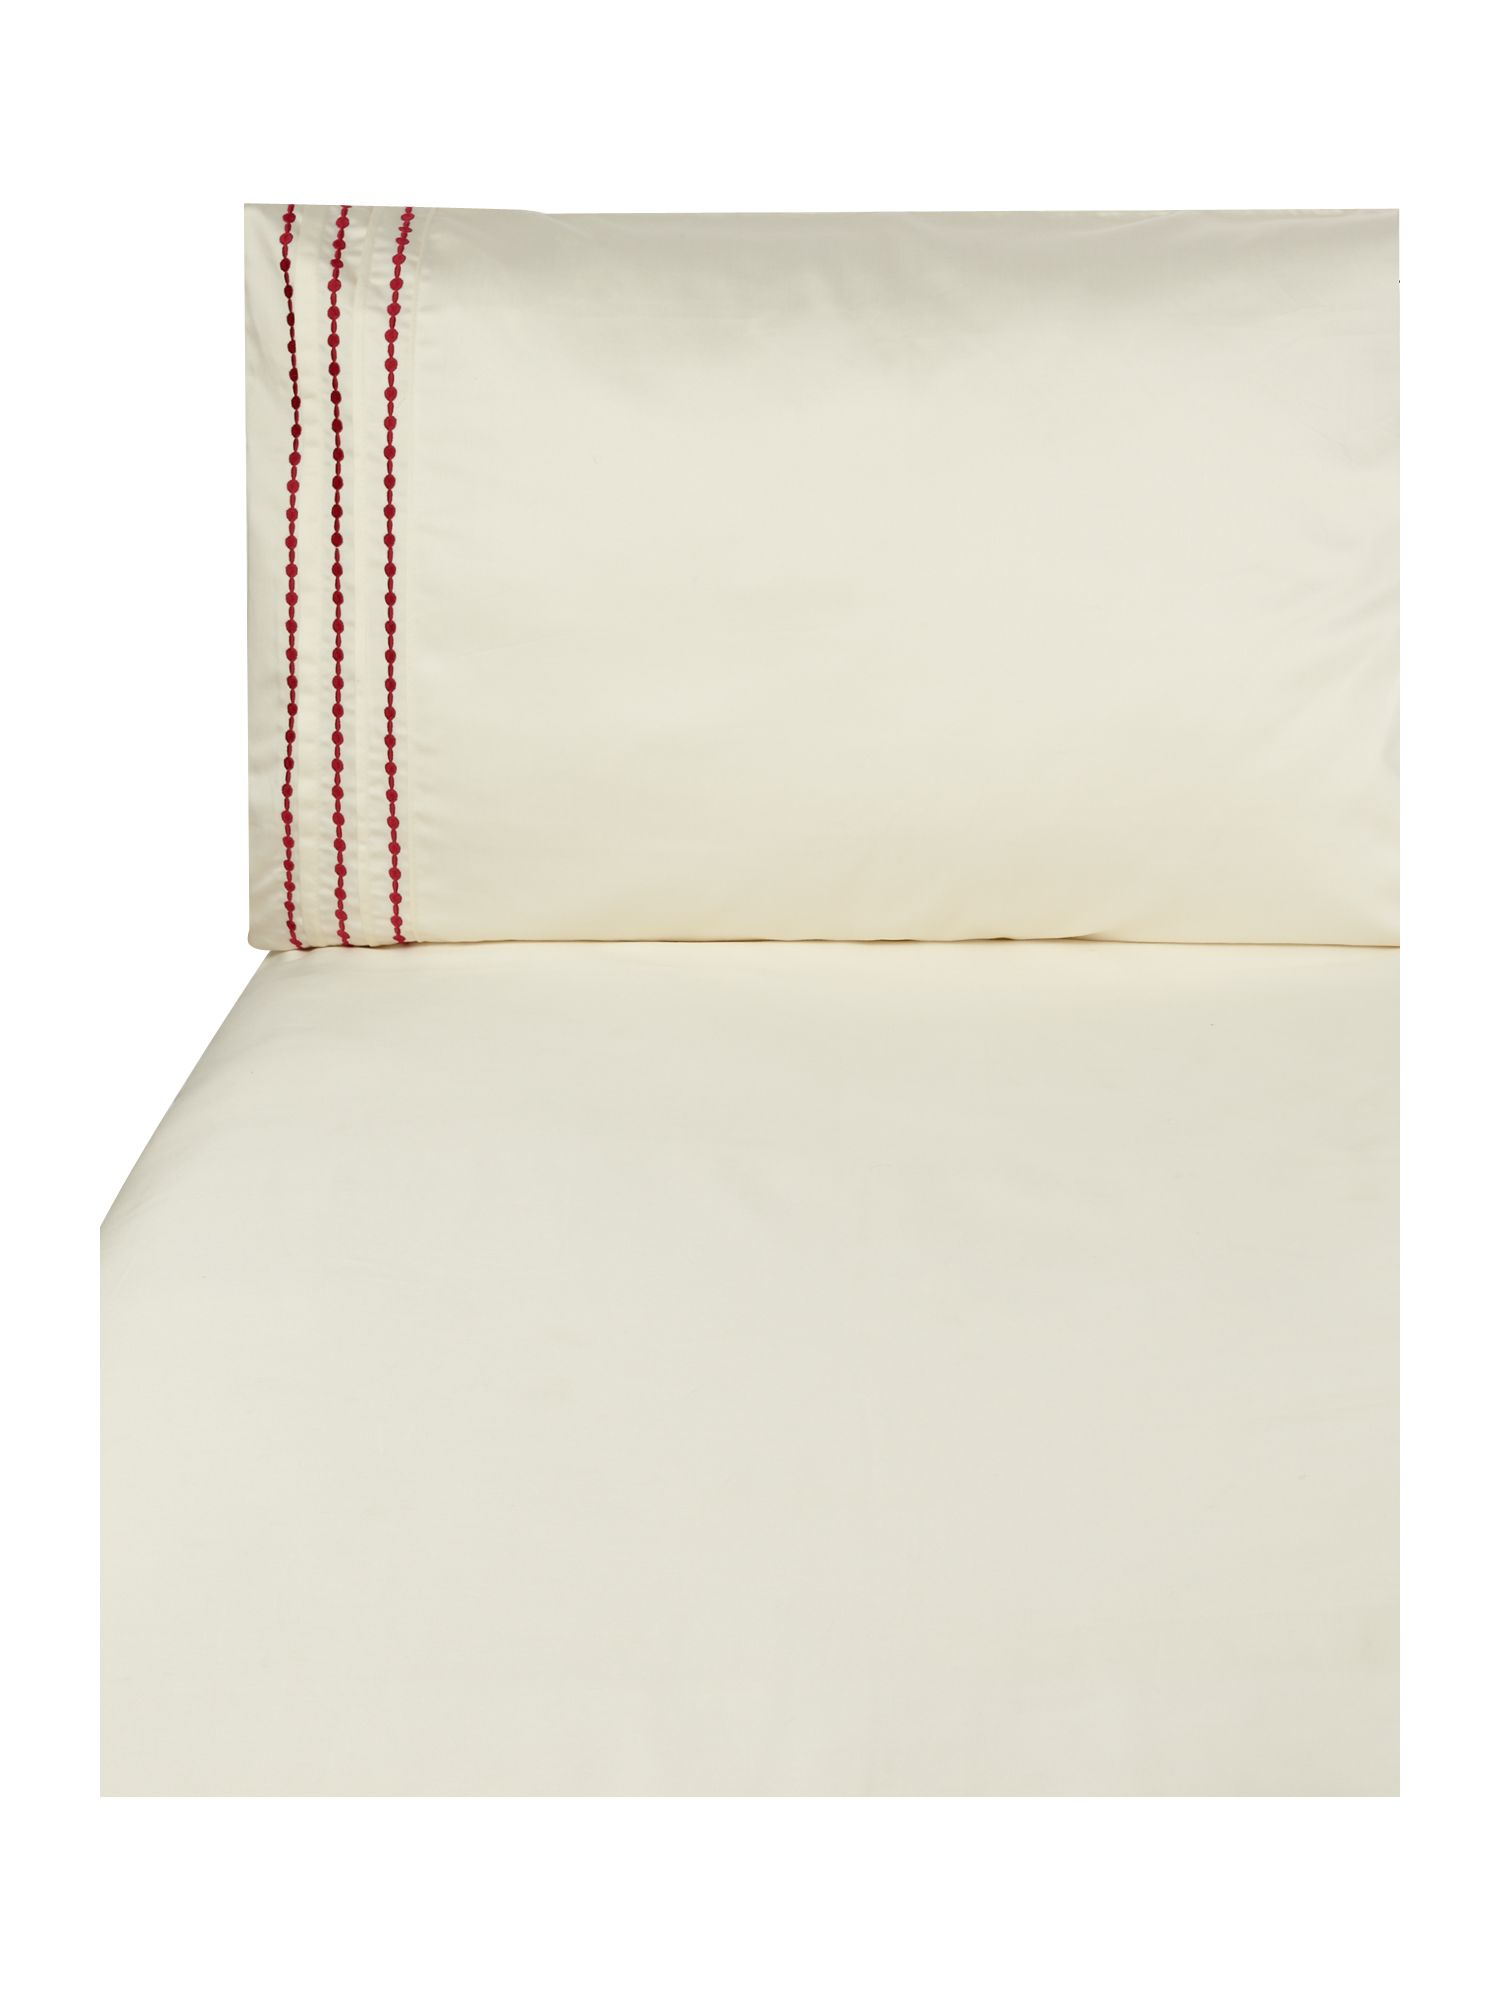 Pearl embroidery bed linen in cherry